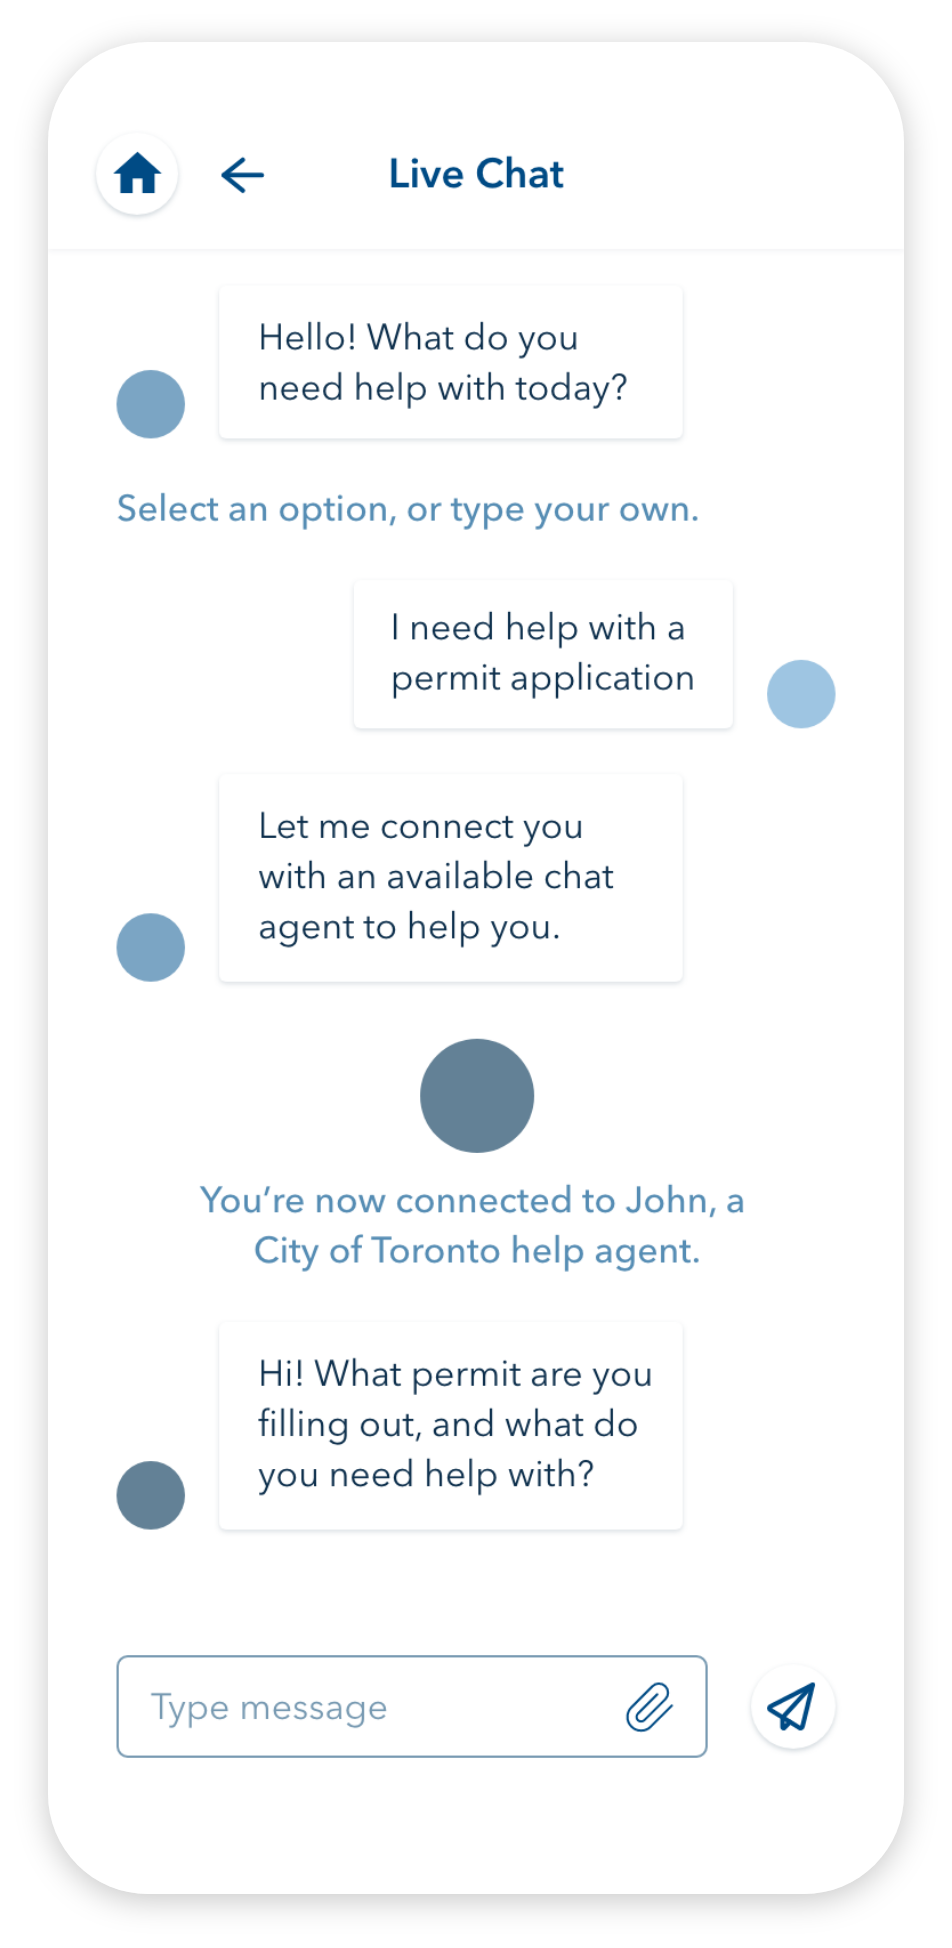 the live chat screen, showing a conversation with a chat bot that connects the user to a help agent